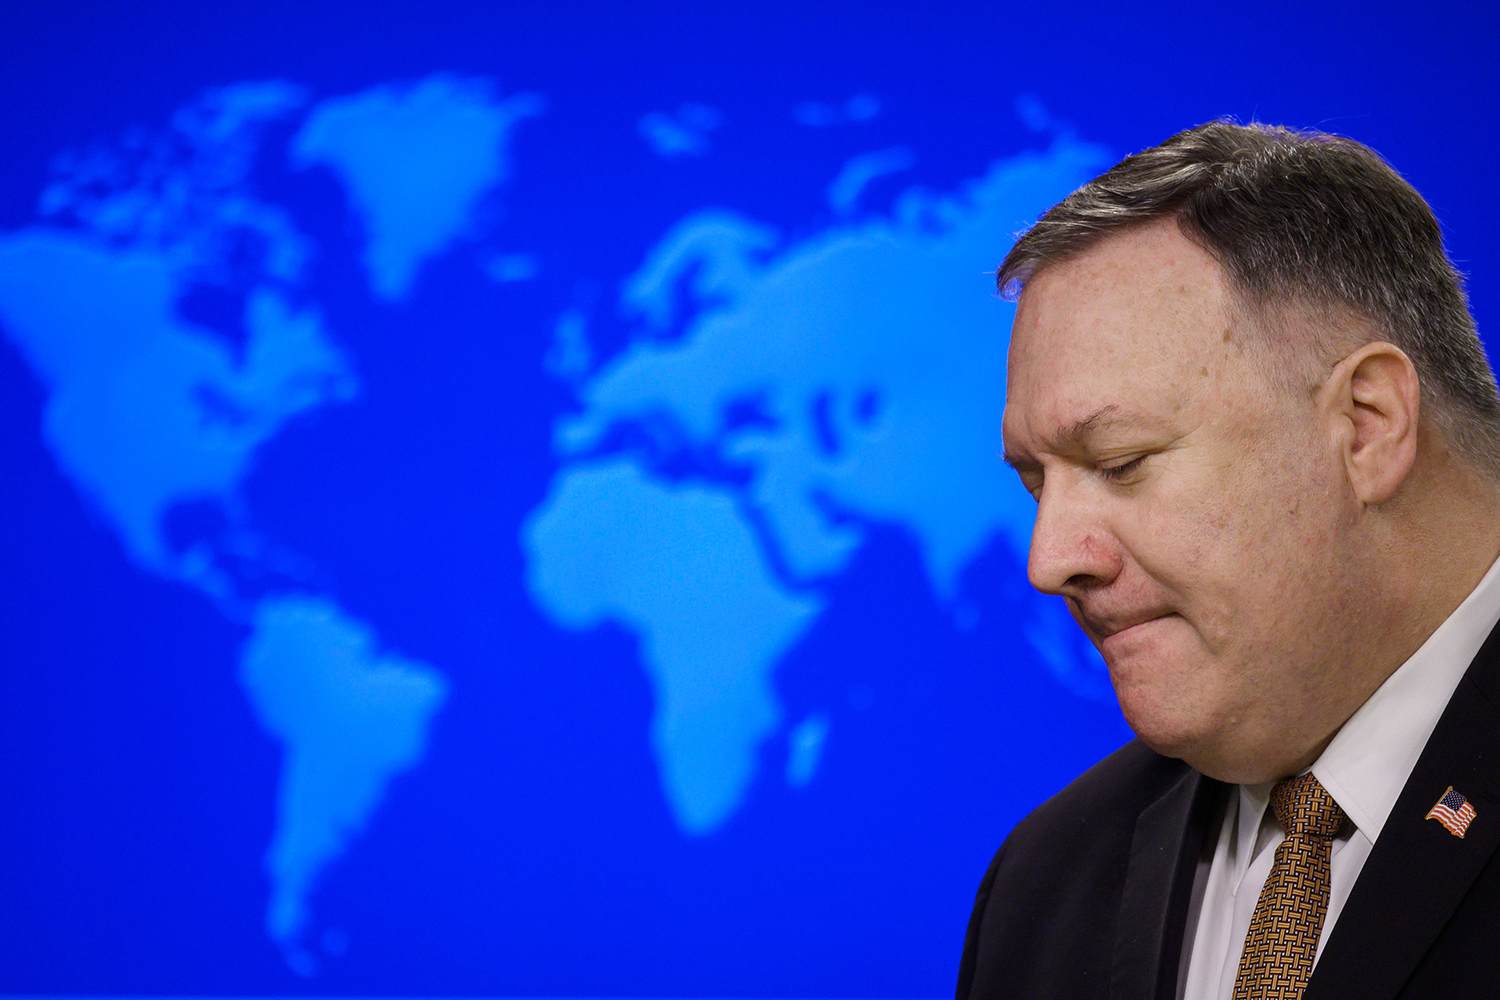 Secretary of State Mike Pompeo during a news conference in Washington, D.C., on March 25.